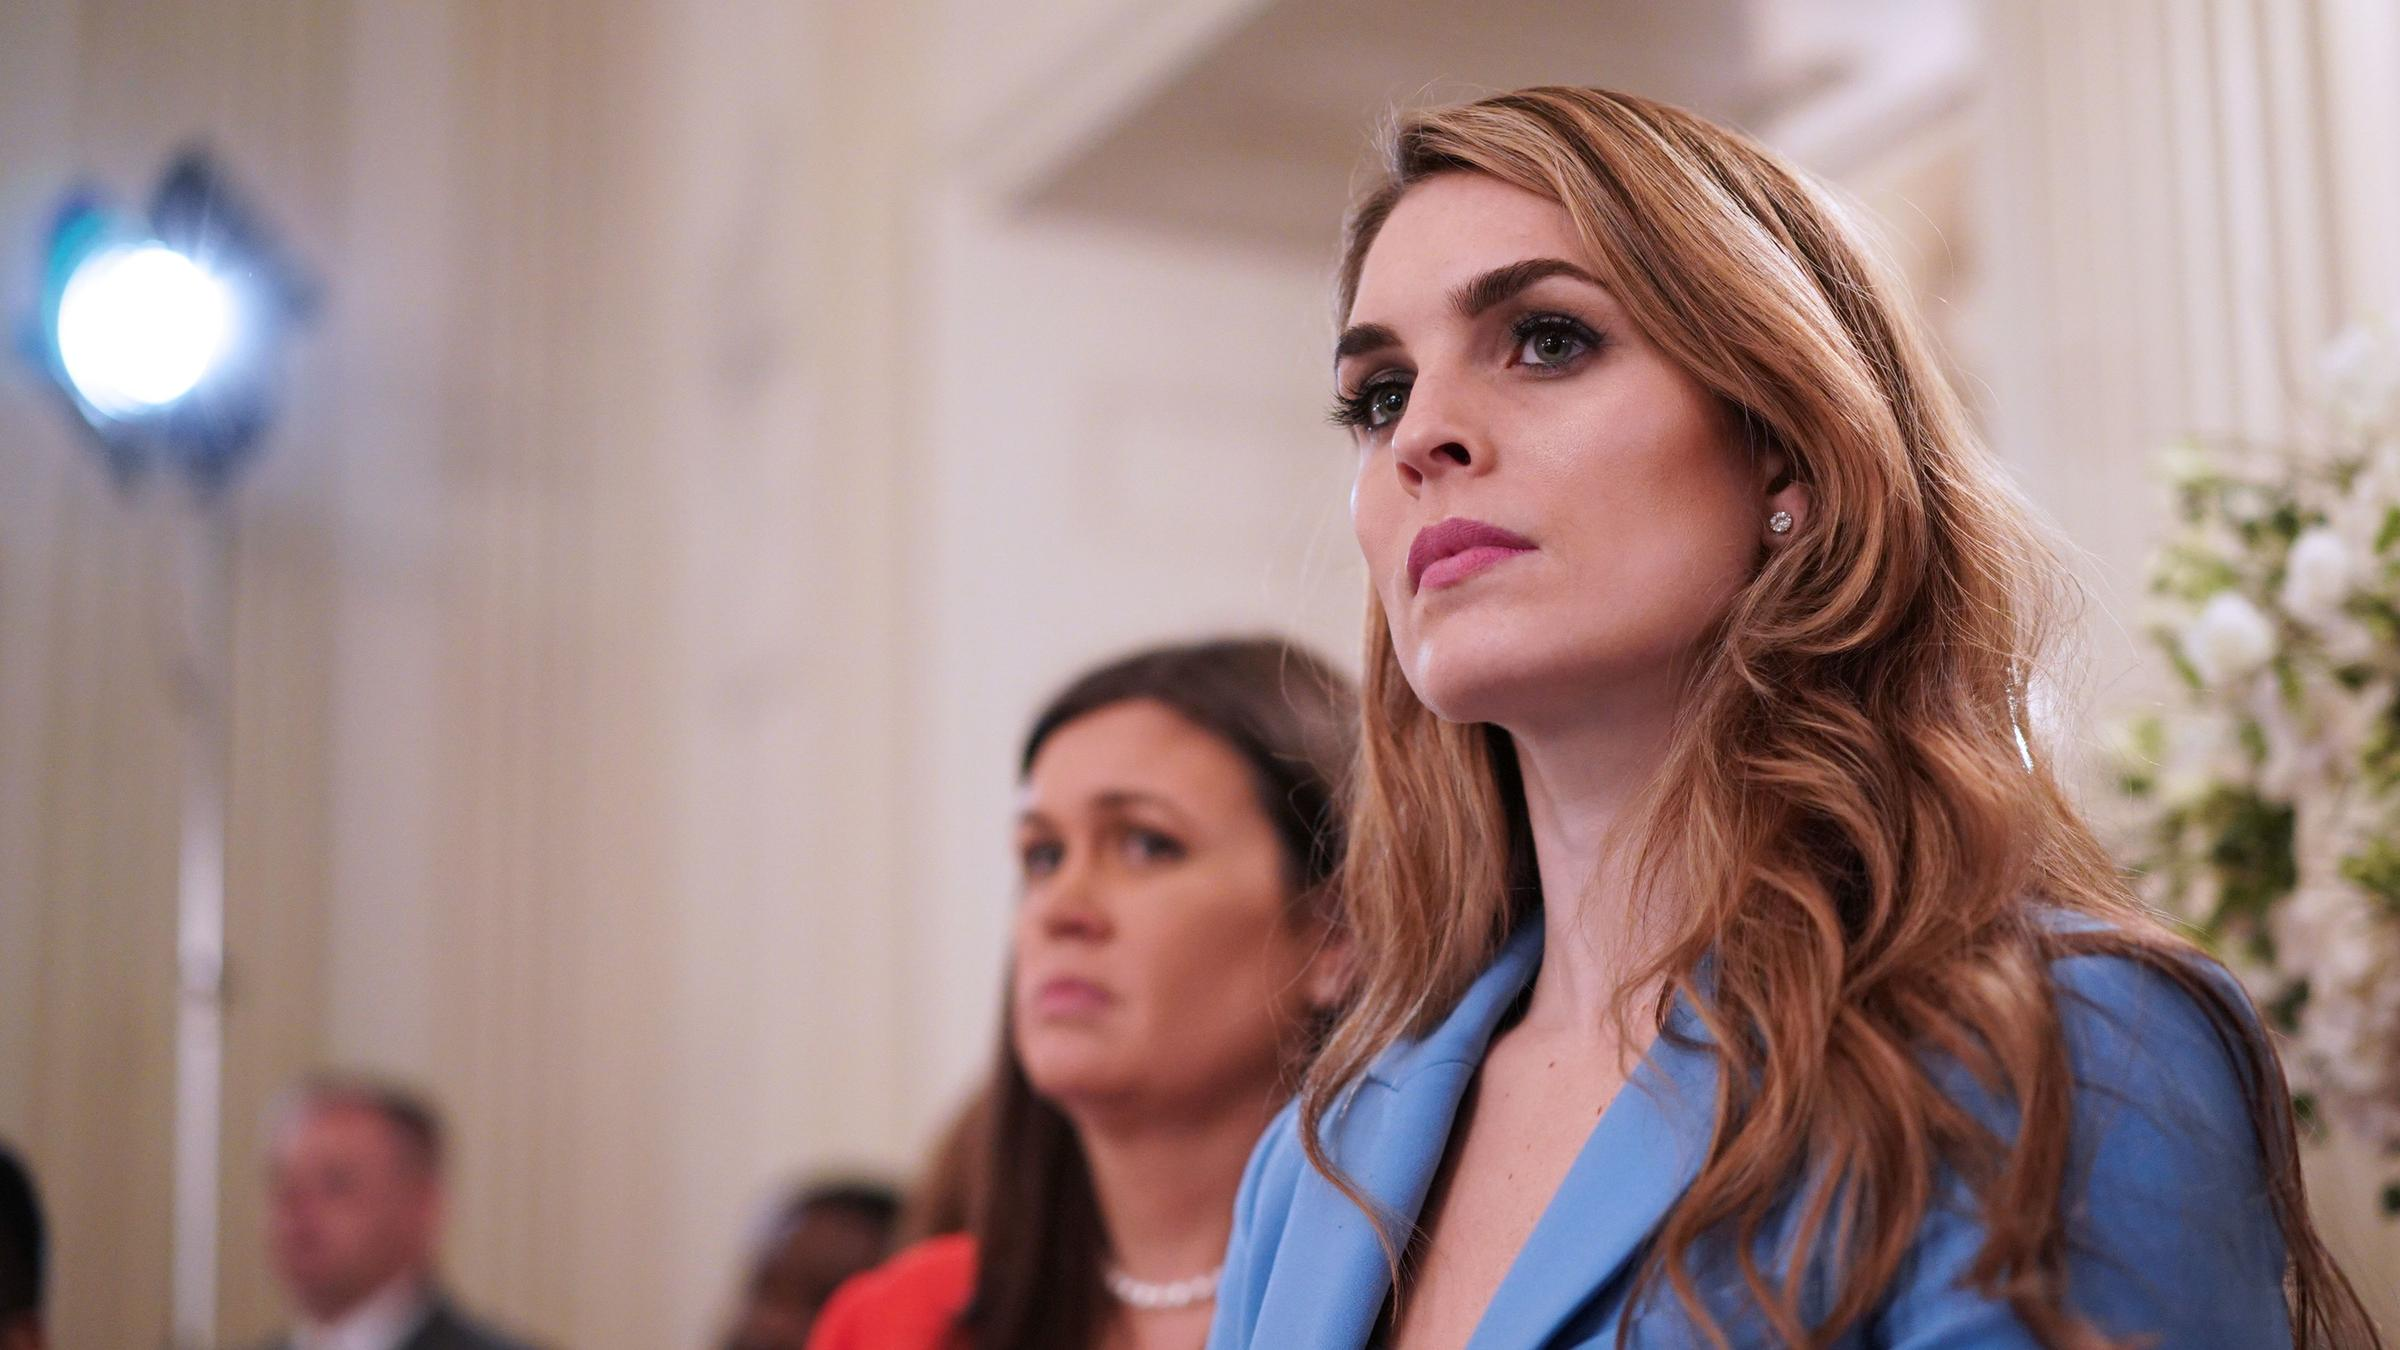 Top Democrat complains about Hope Hicks' evasiveness during Russian Federation interview